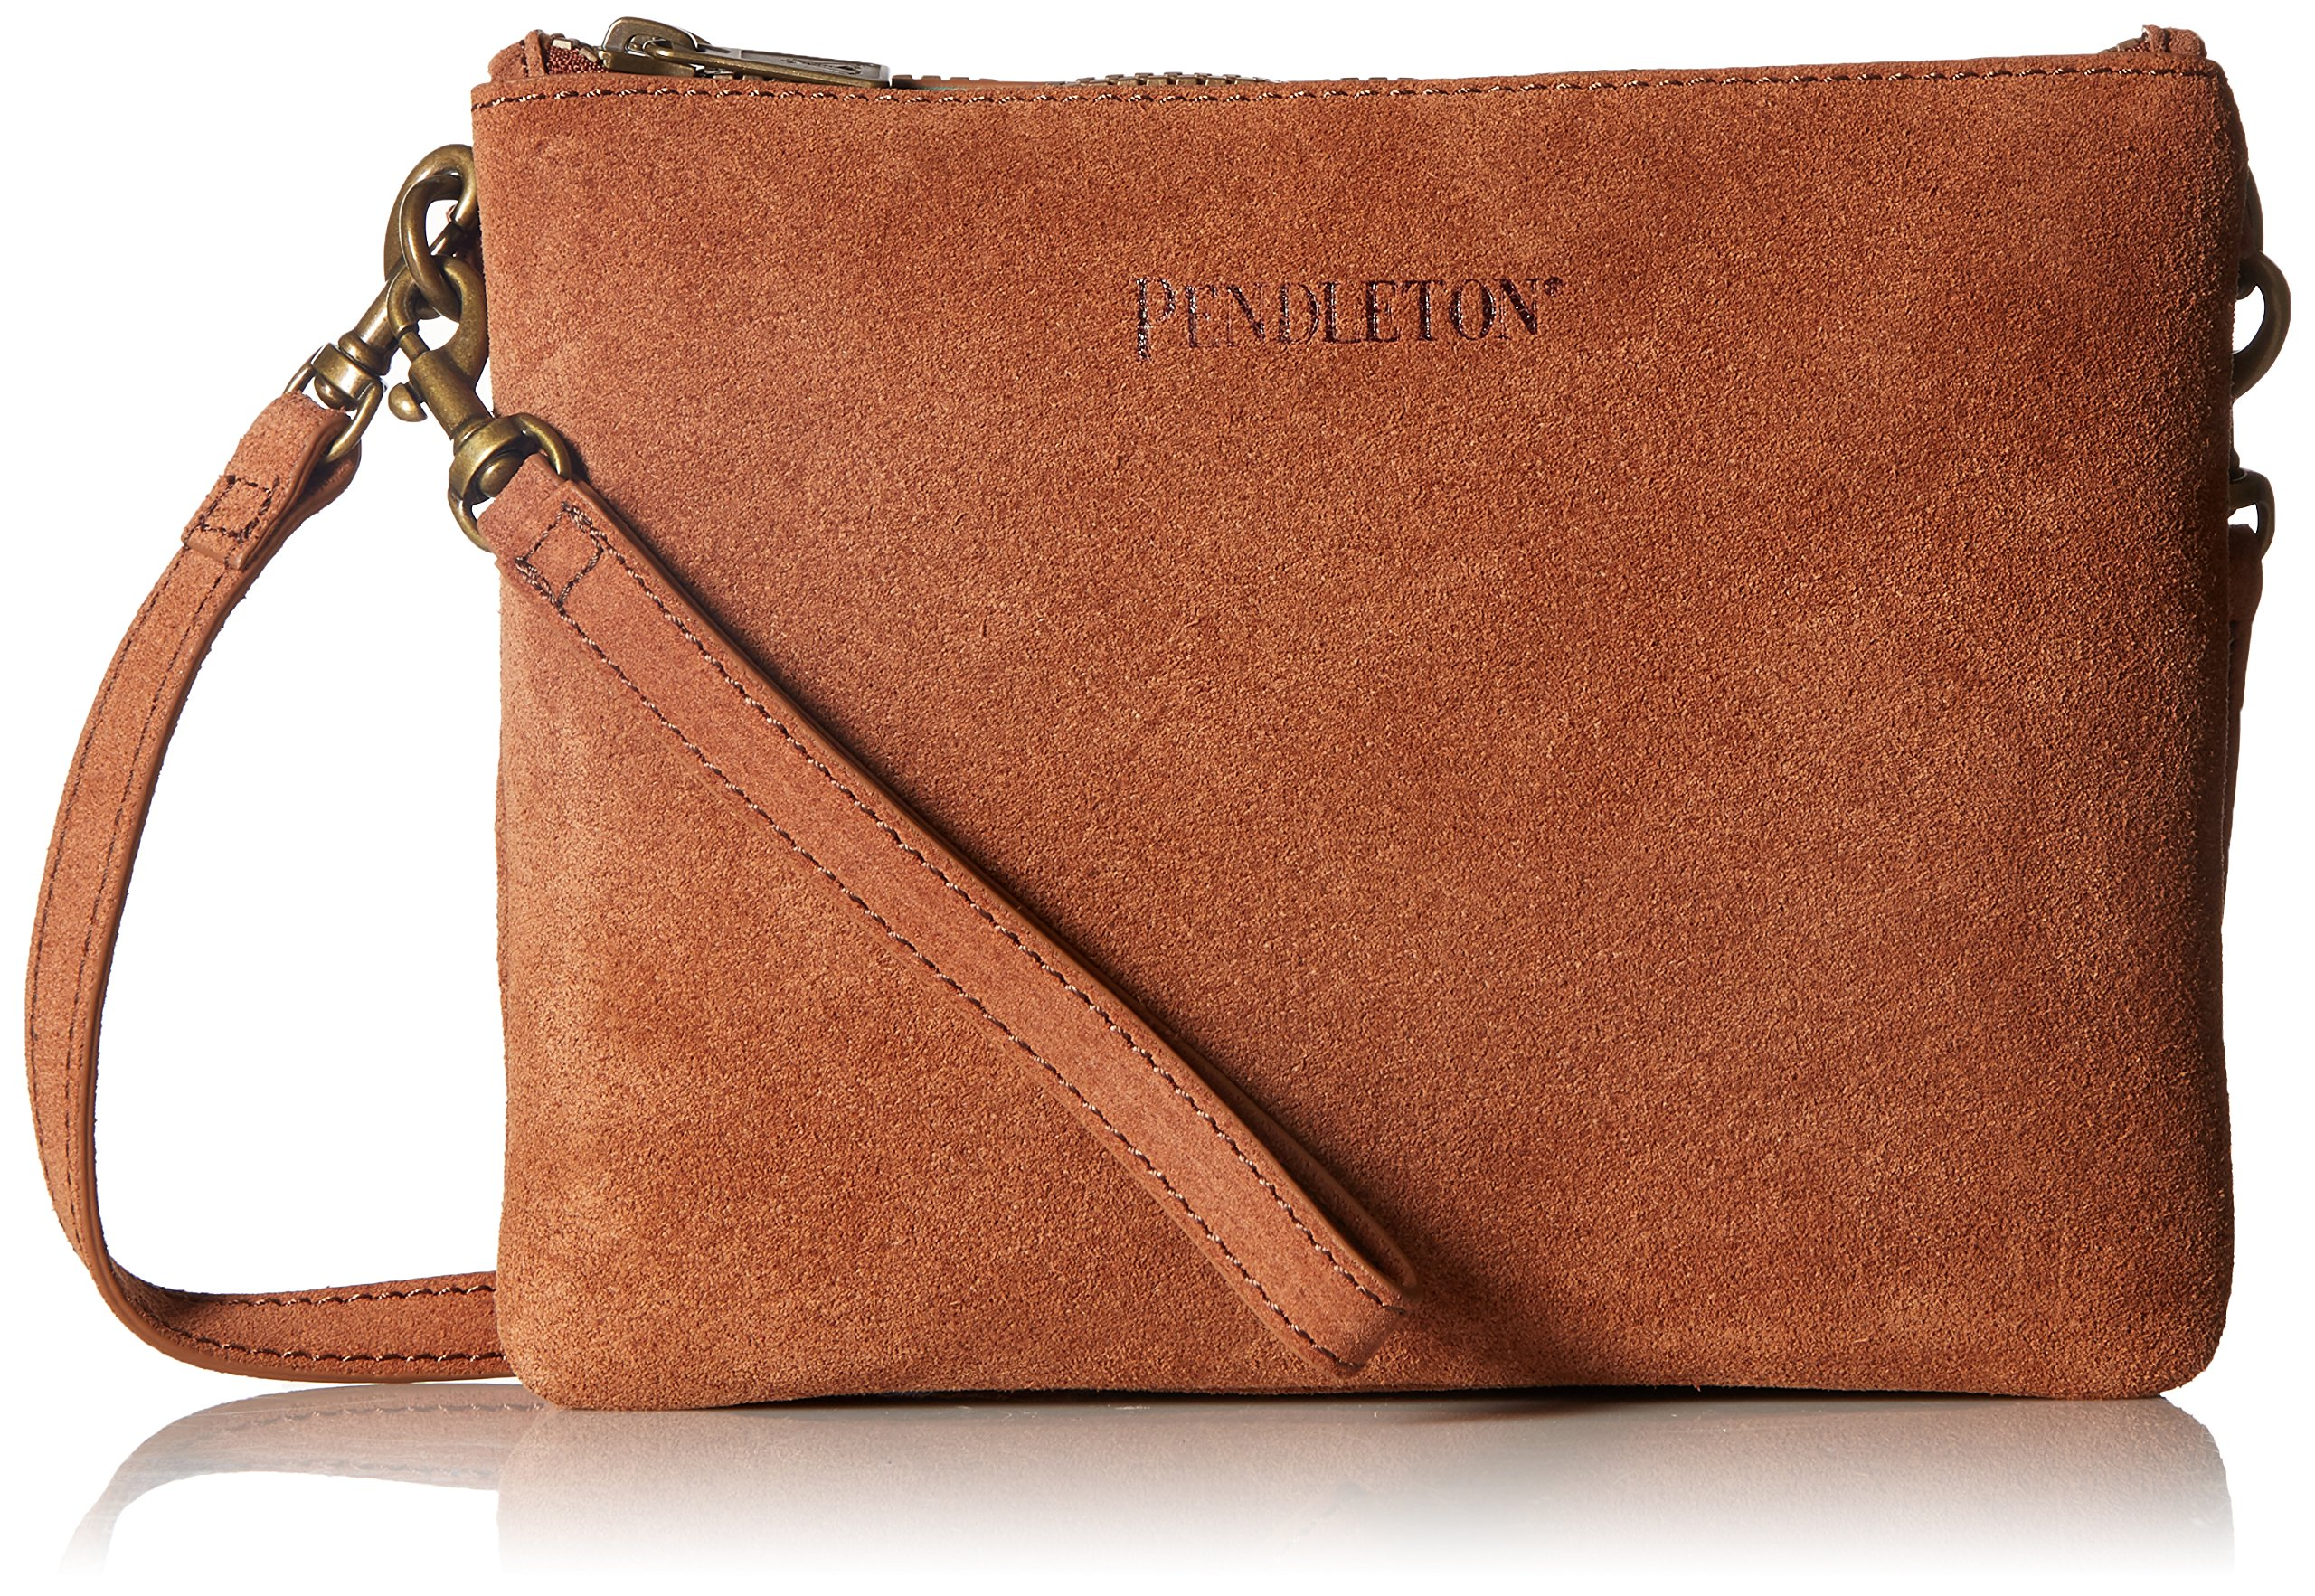 Pendleton Women's Suede Crossbody, Brown/Aqua, One Size